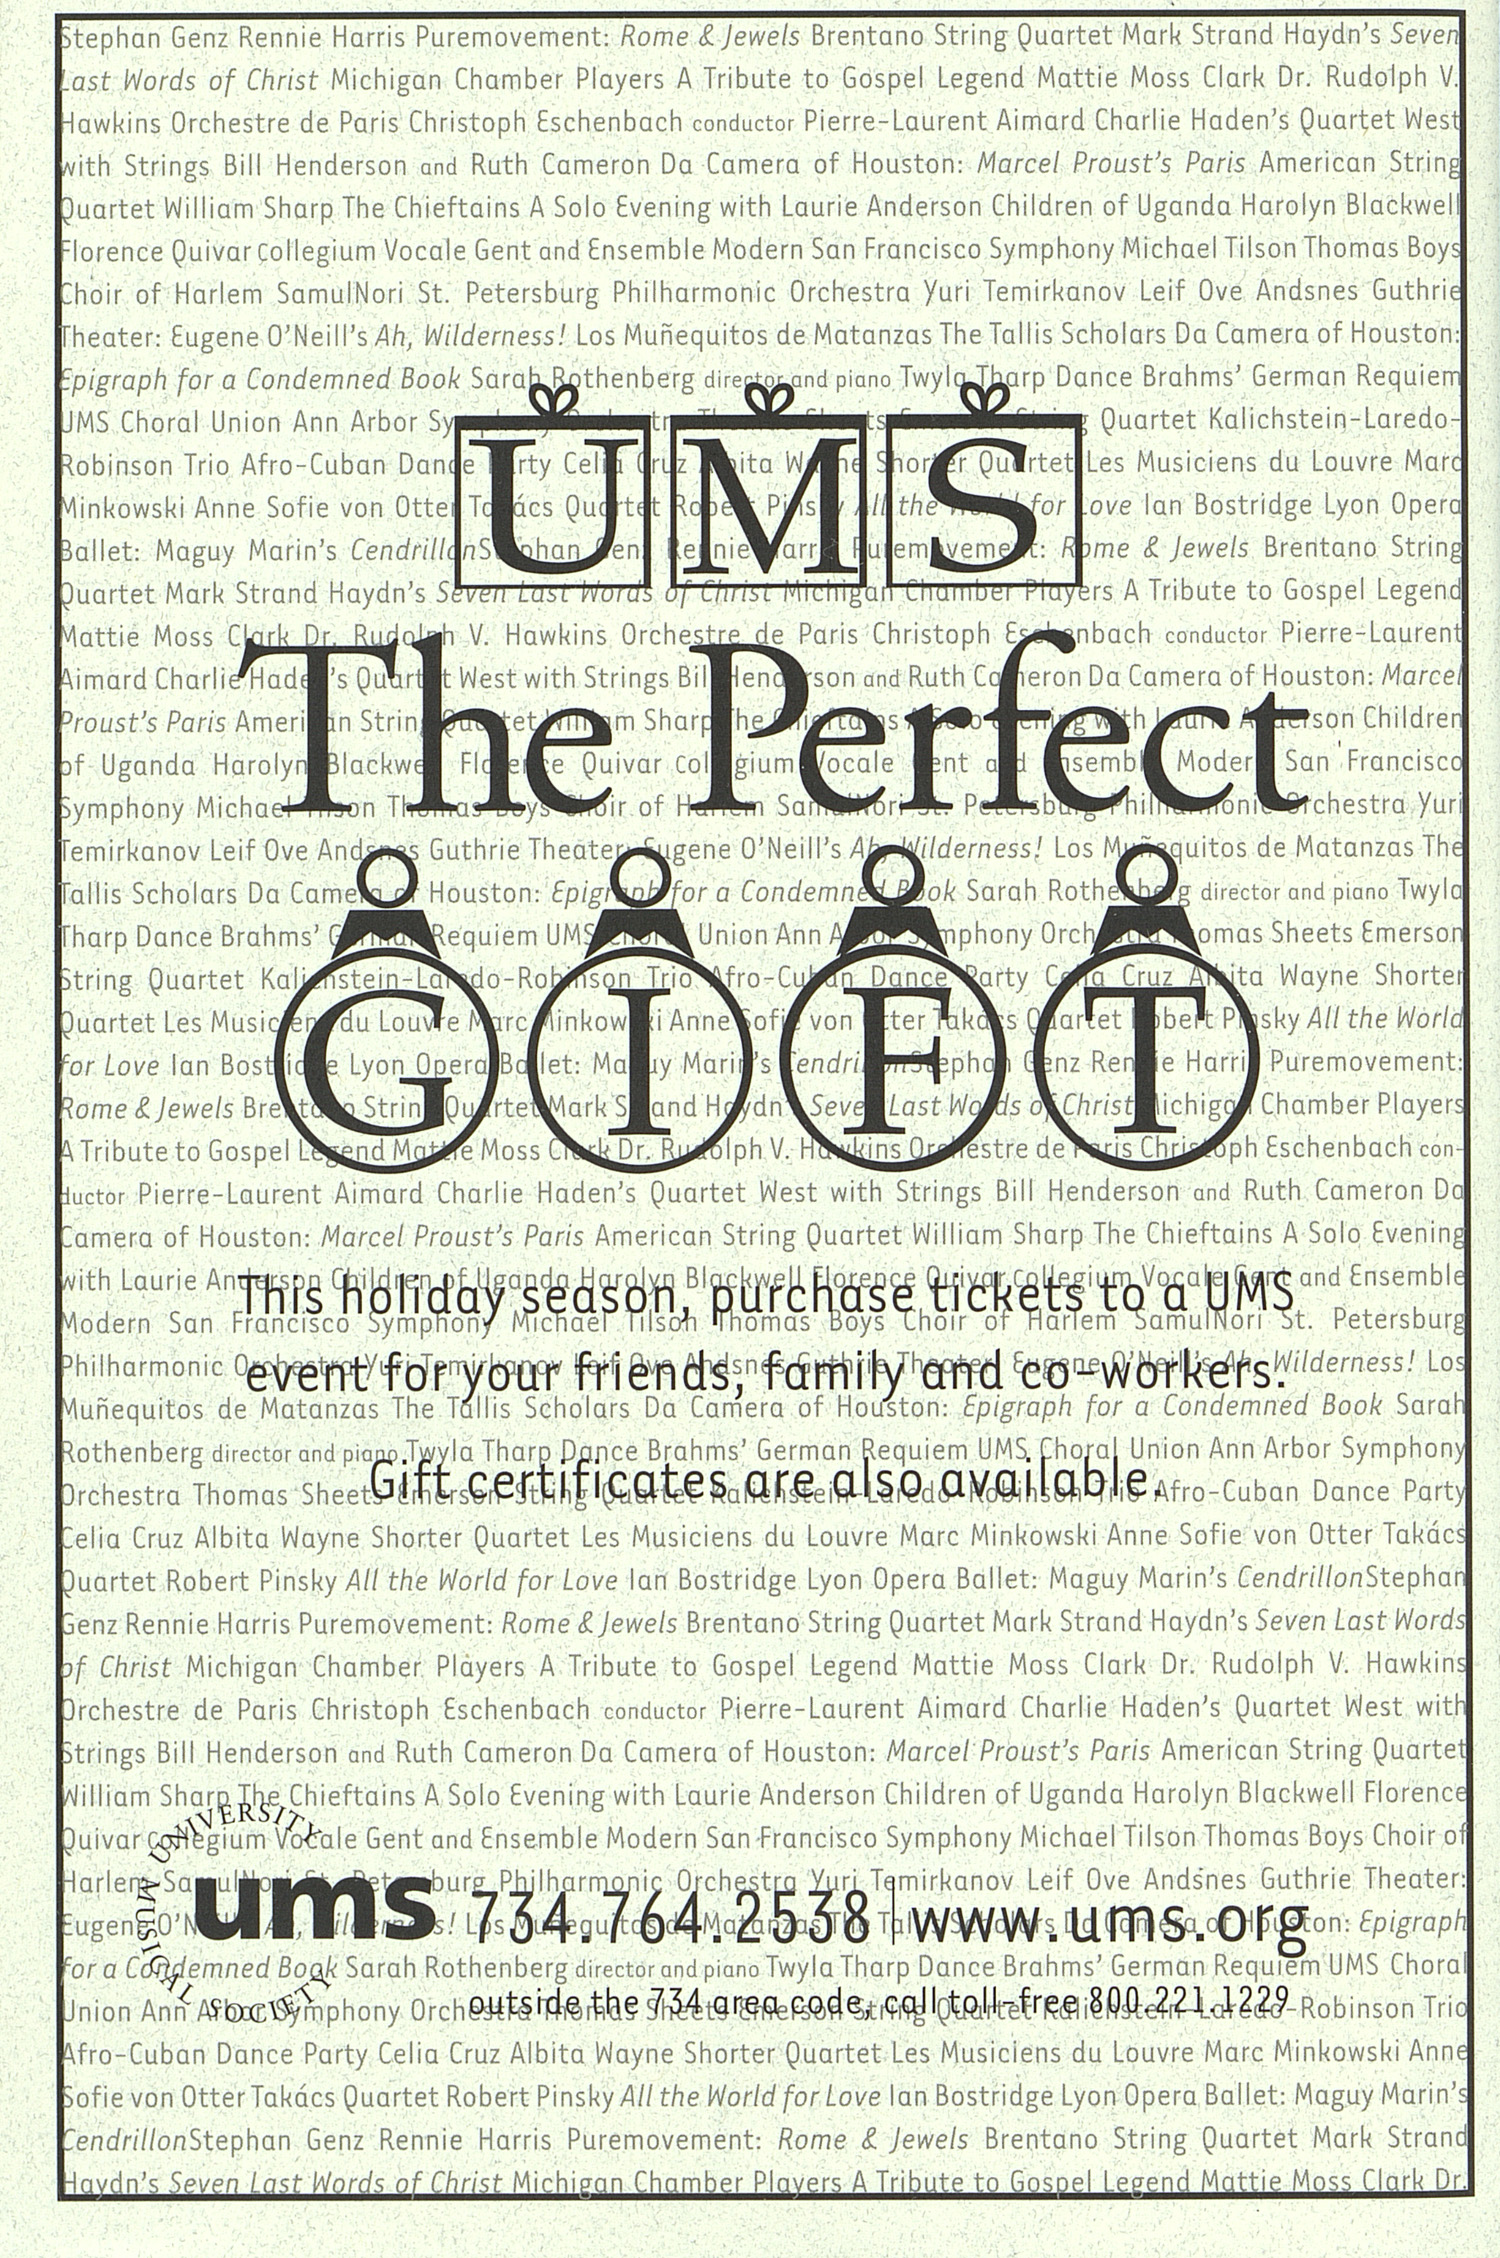 UMS Concert Program, Saturday Dec. 01 To 13: University Musical Society: 2001 Fall - Saturday Dec. 01 To 13 --  image